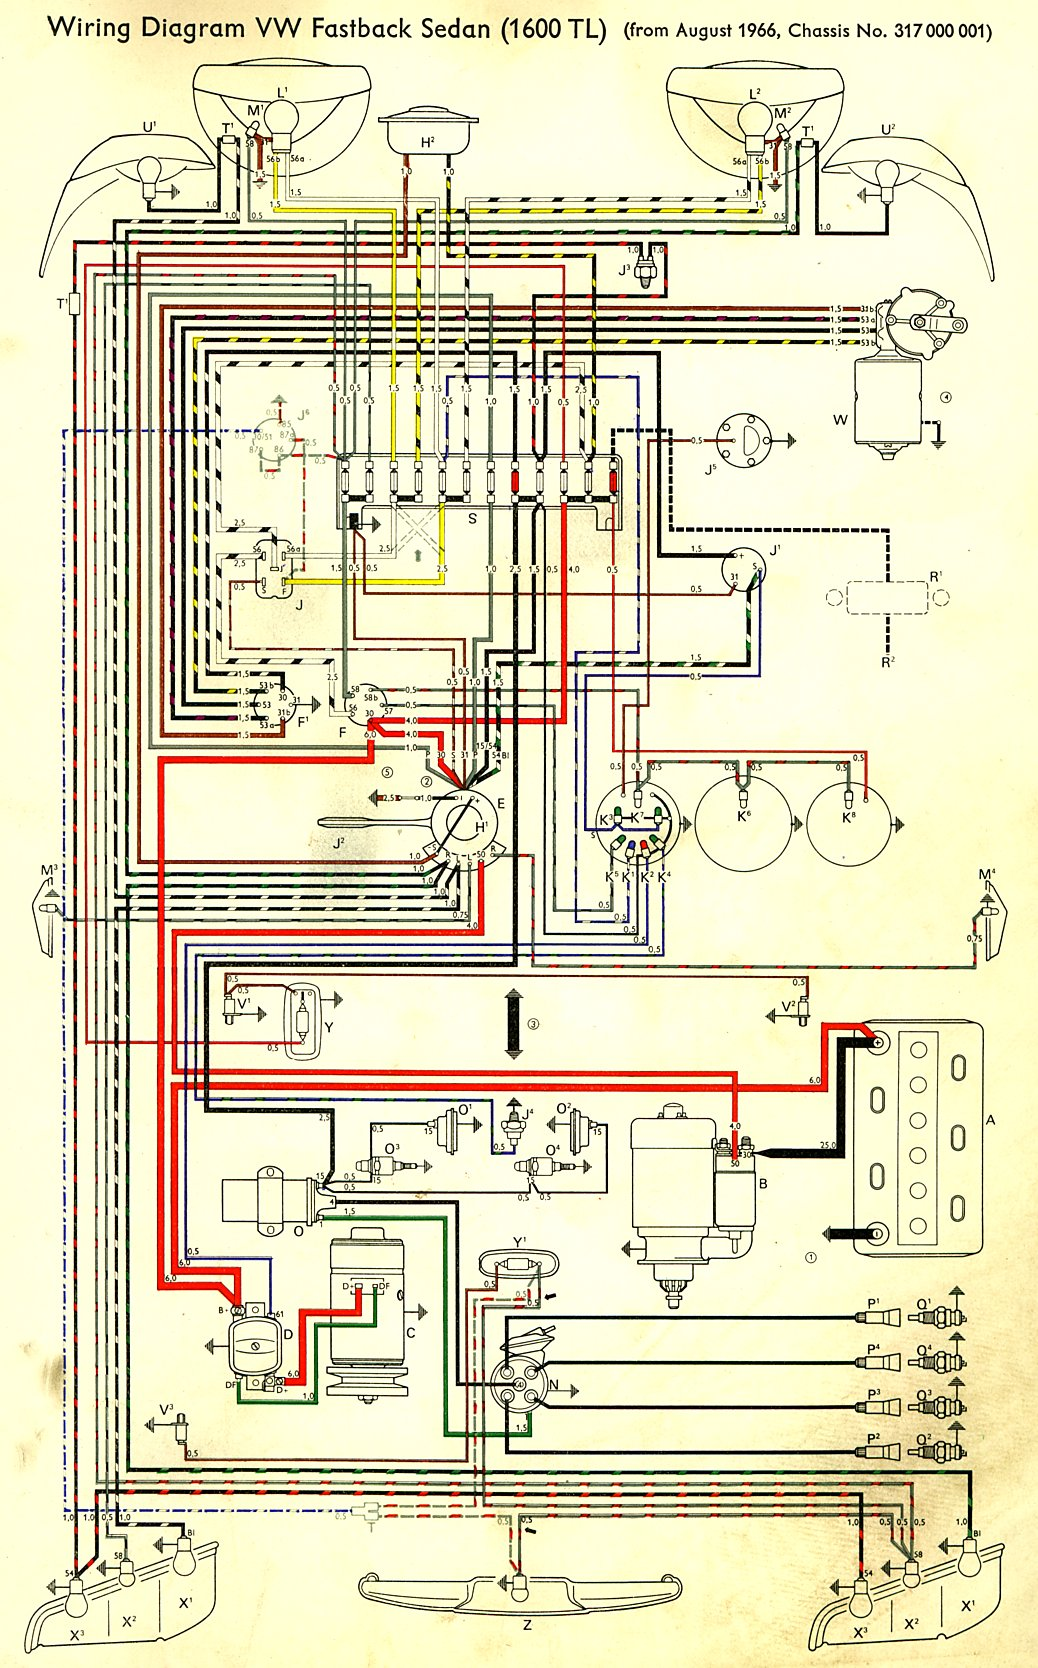 type3_1600TL_67 european wiring diagram hyundai sonata wiring diagram \u2022 free vw wiring diagram symbols at bakdesigns.co